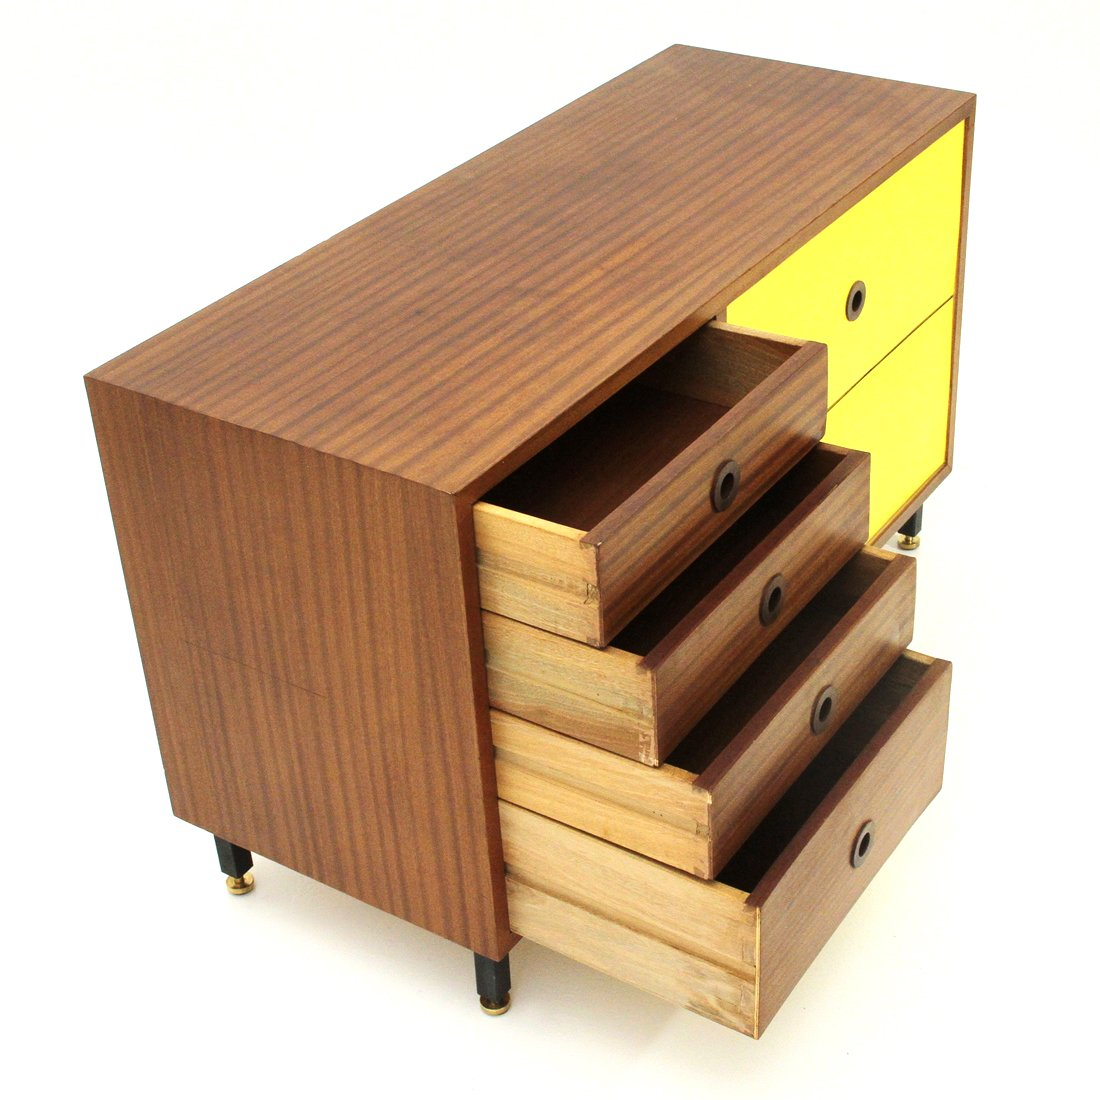 Mid Century Italian Teak and Yellow Formica Sideboard, 1960s for sale at Pamono